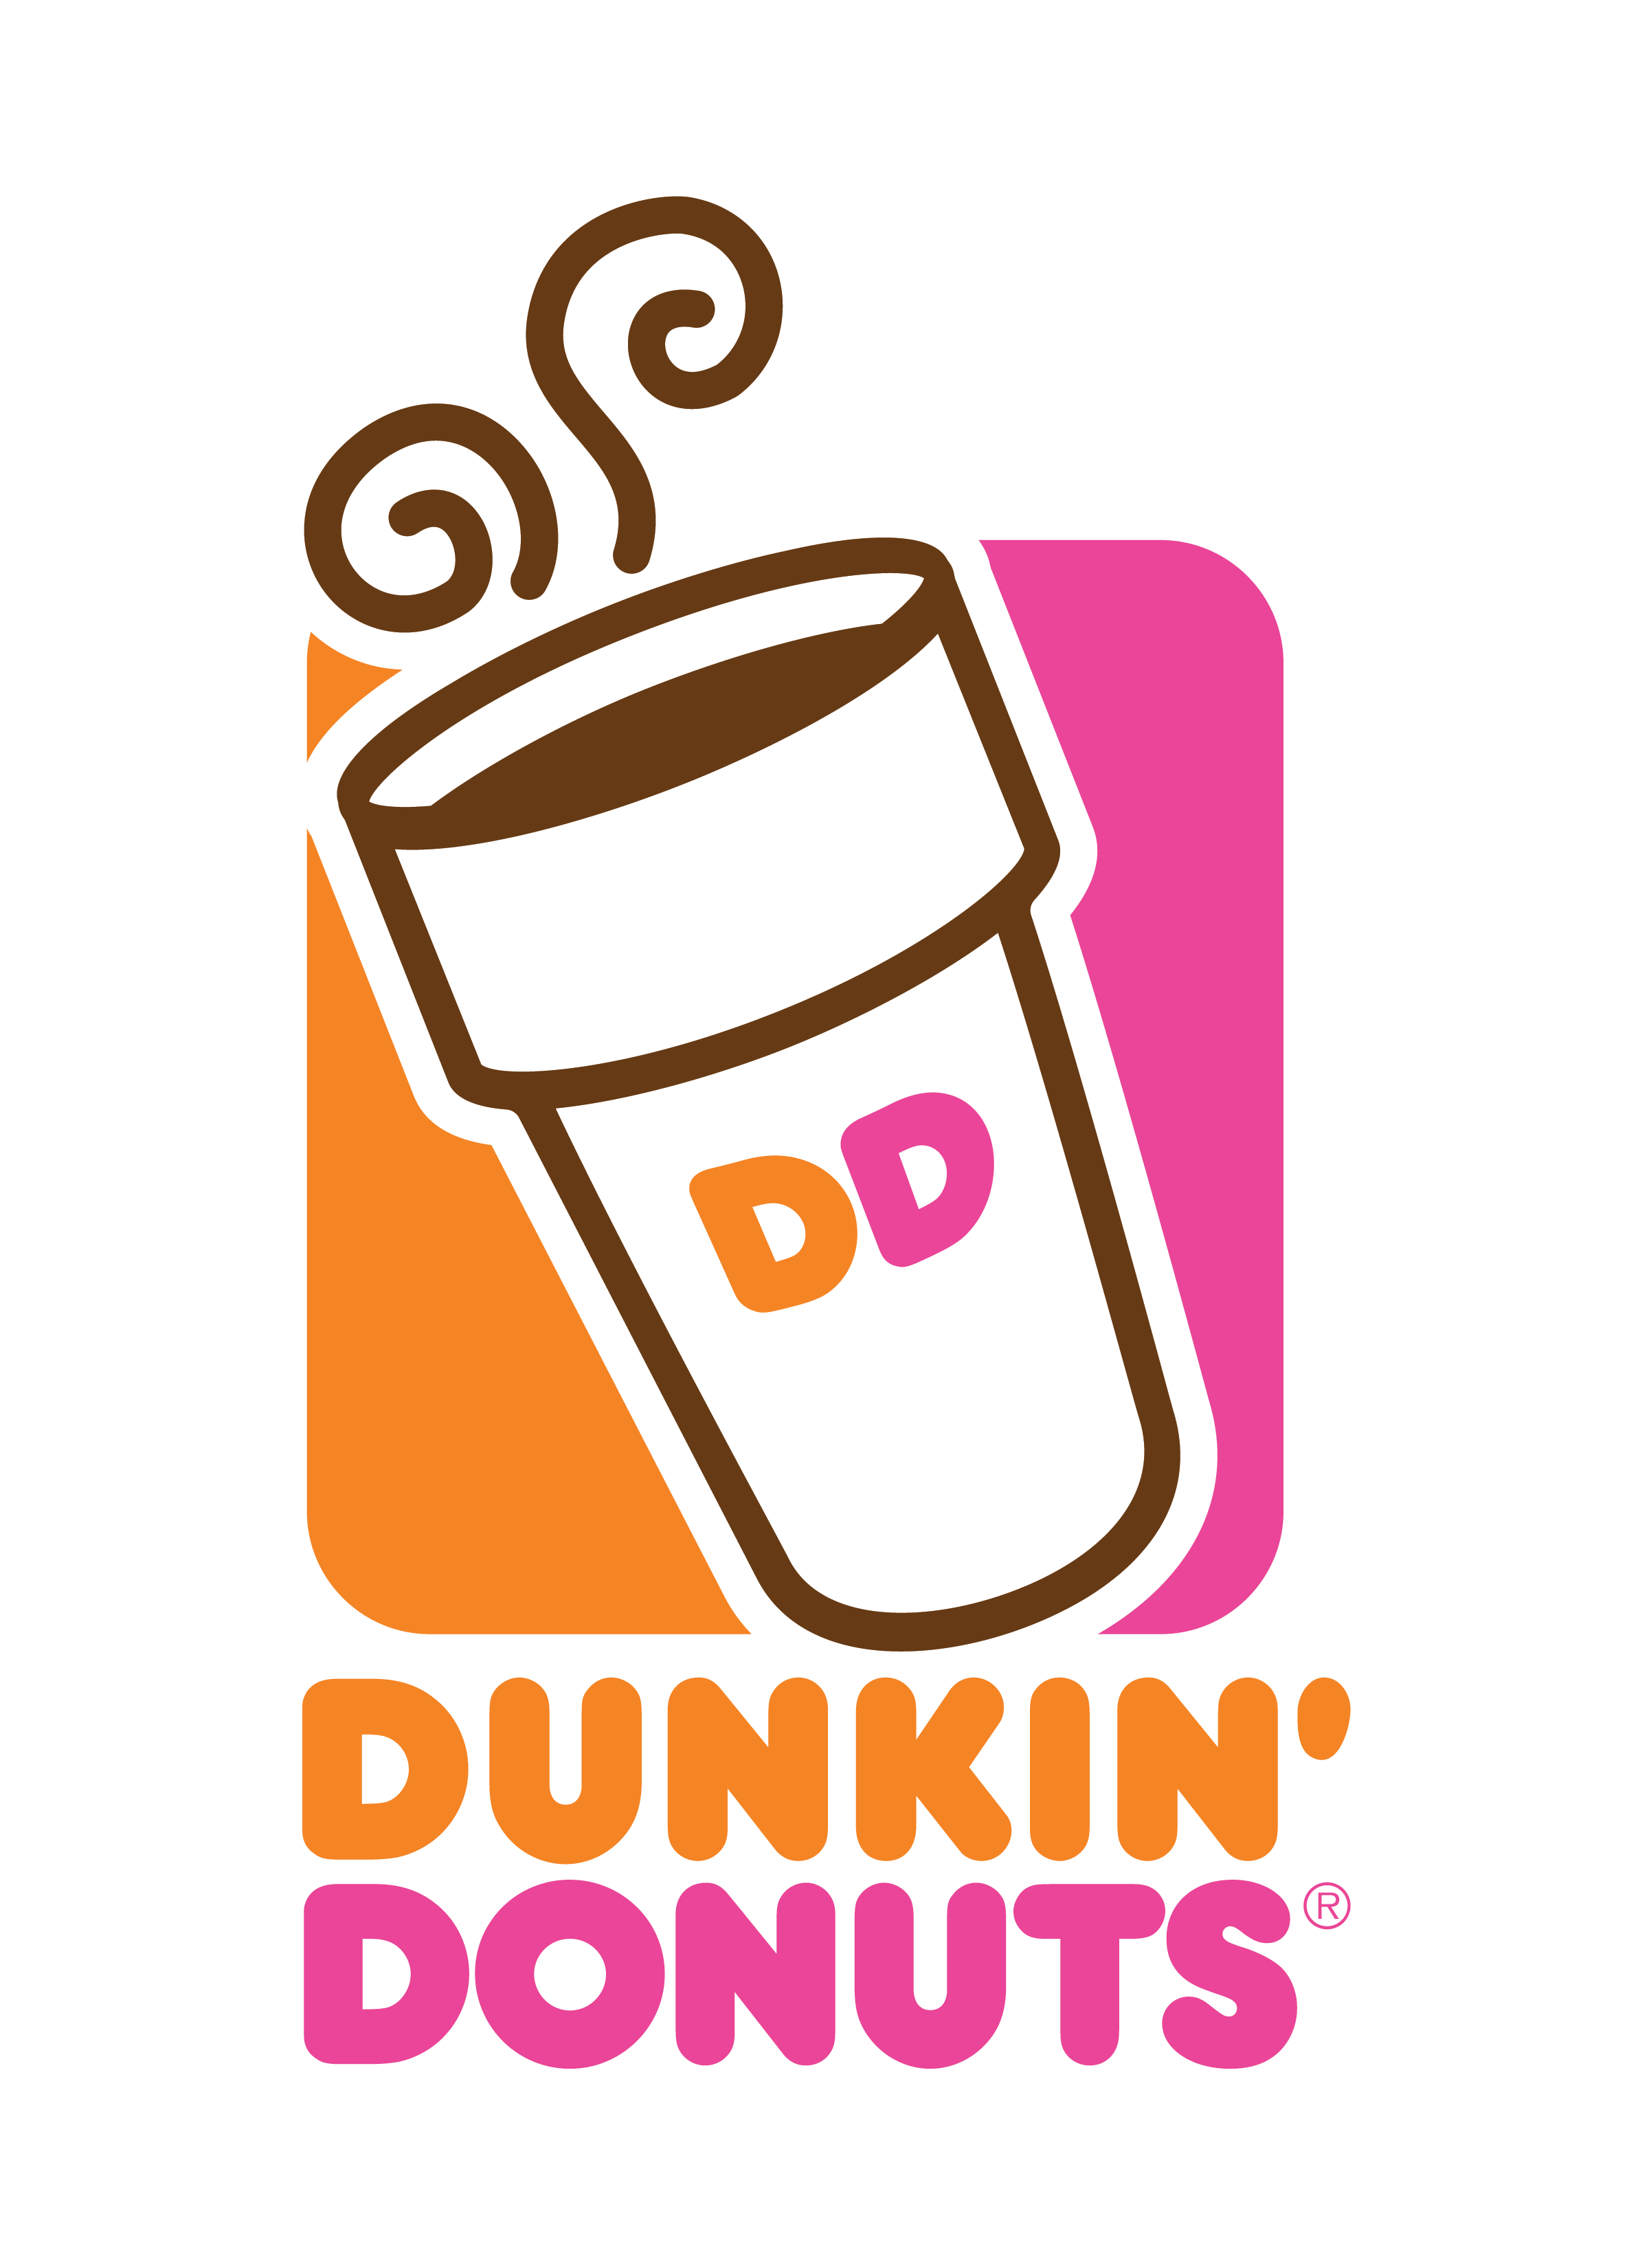 Donuts clipart munchkin. Old fashioned dunkin home